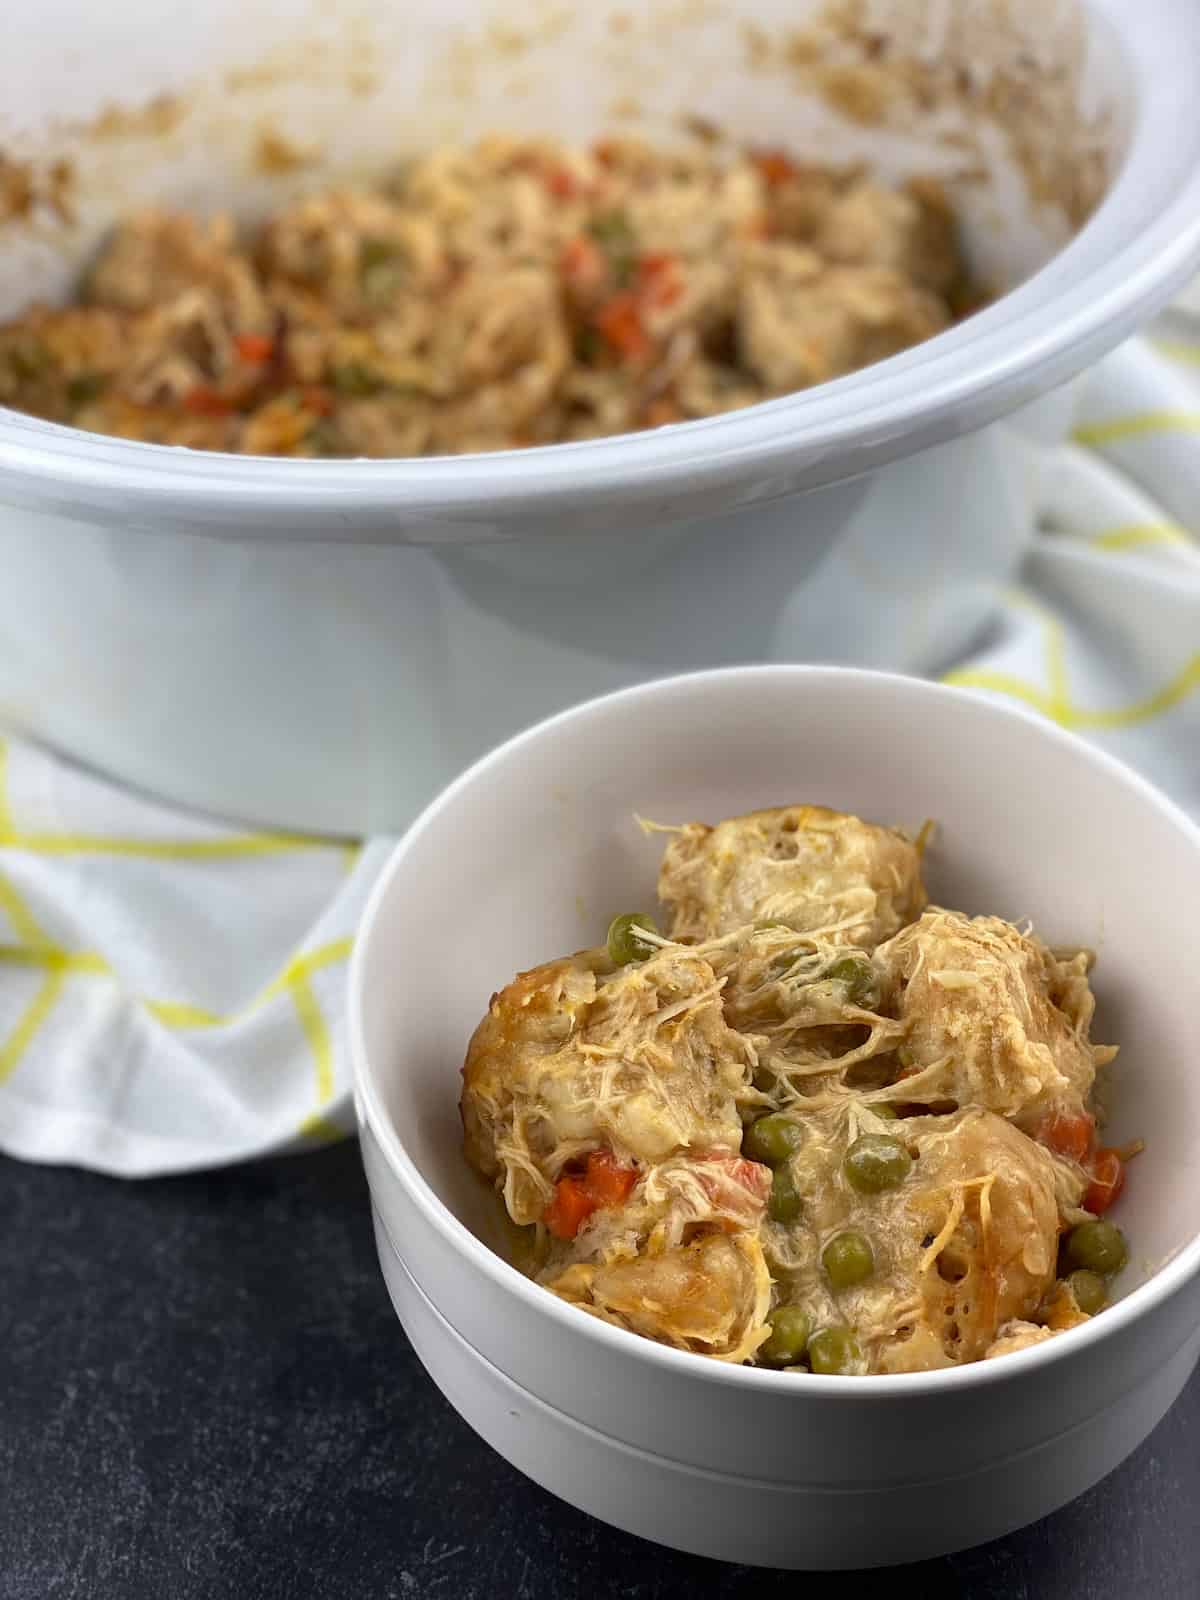 crock pot insert with bowl of chicken and dumplings made with canned biscuits